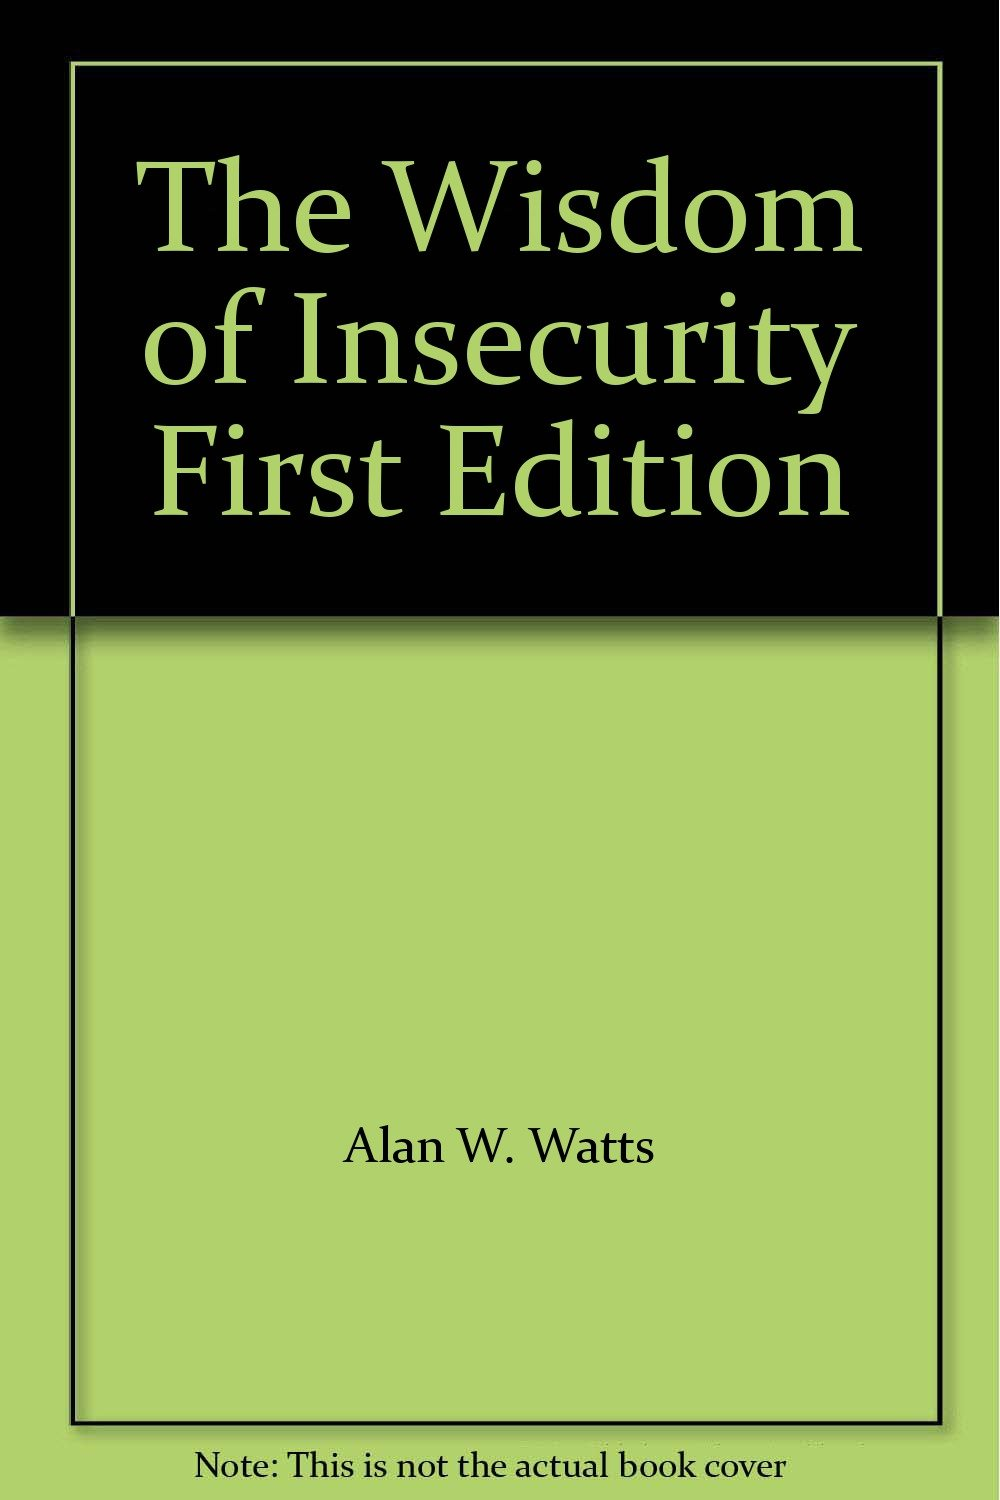 The wisdom of insecurity first edition alan w watts amazon books fandeluxe Image collections